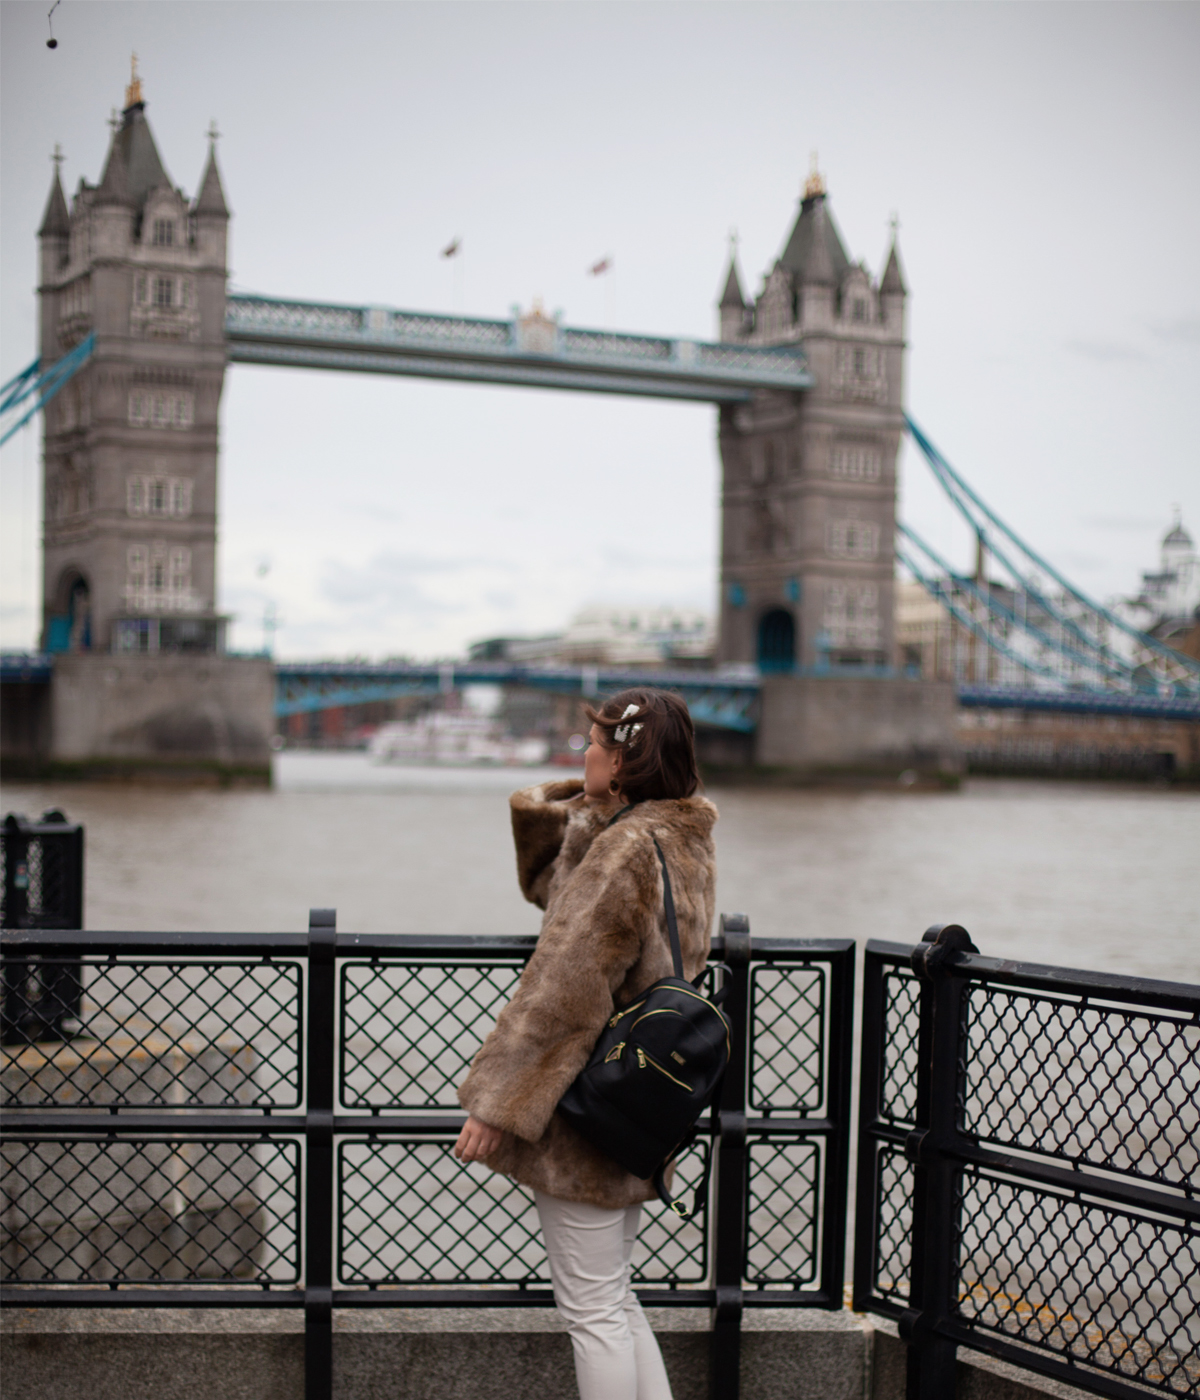 Tower Bride, London / Photo: Emilia Wallin